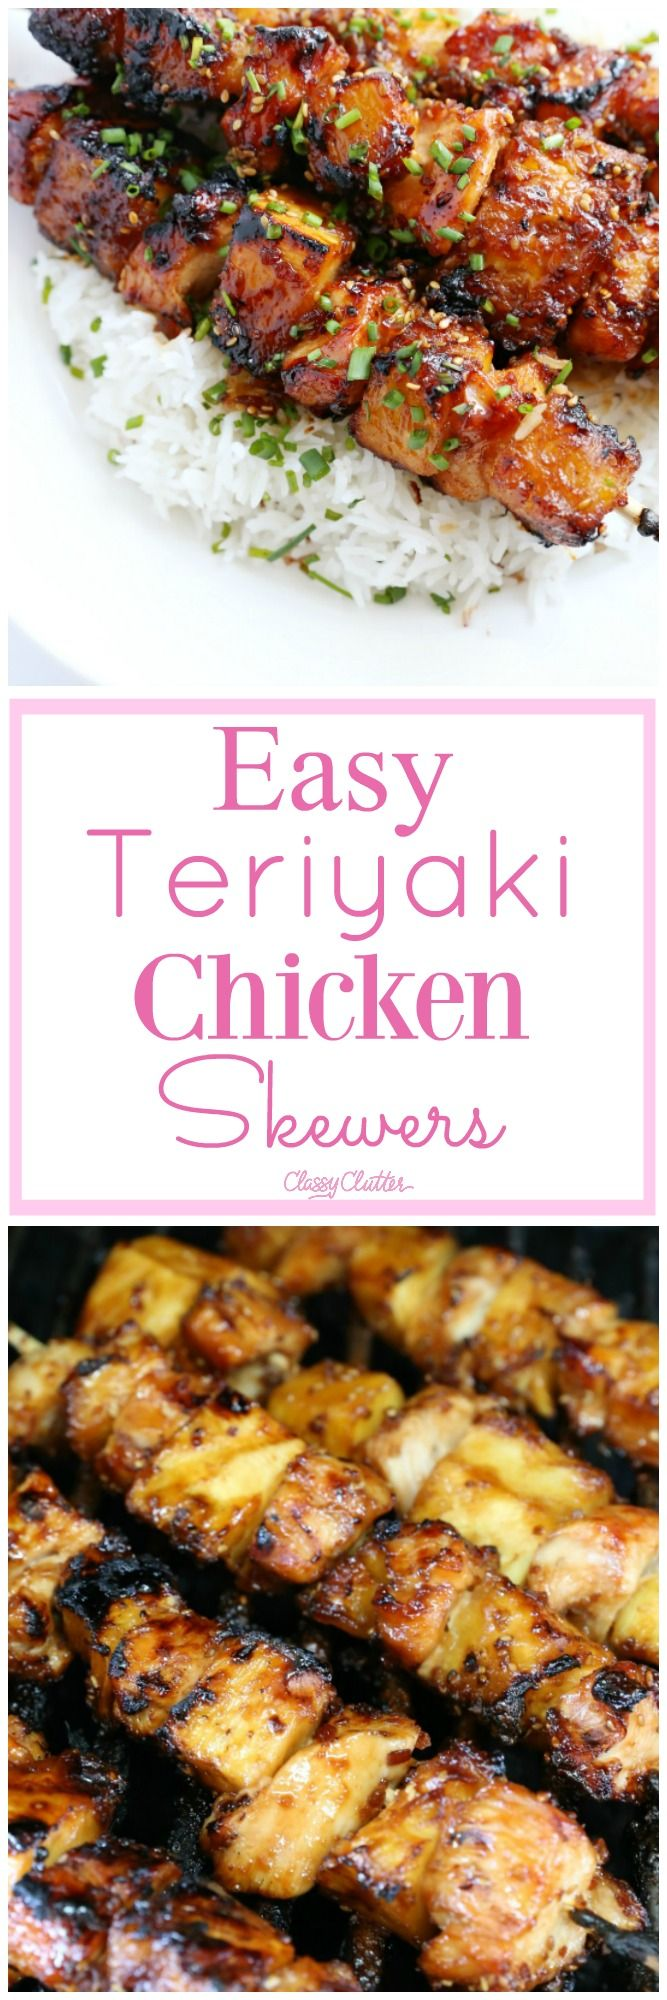 This tasty meal is amazing! I love how easy these teriyaki chicken skewers are to make! Click for the recipe